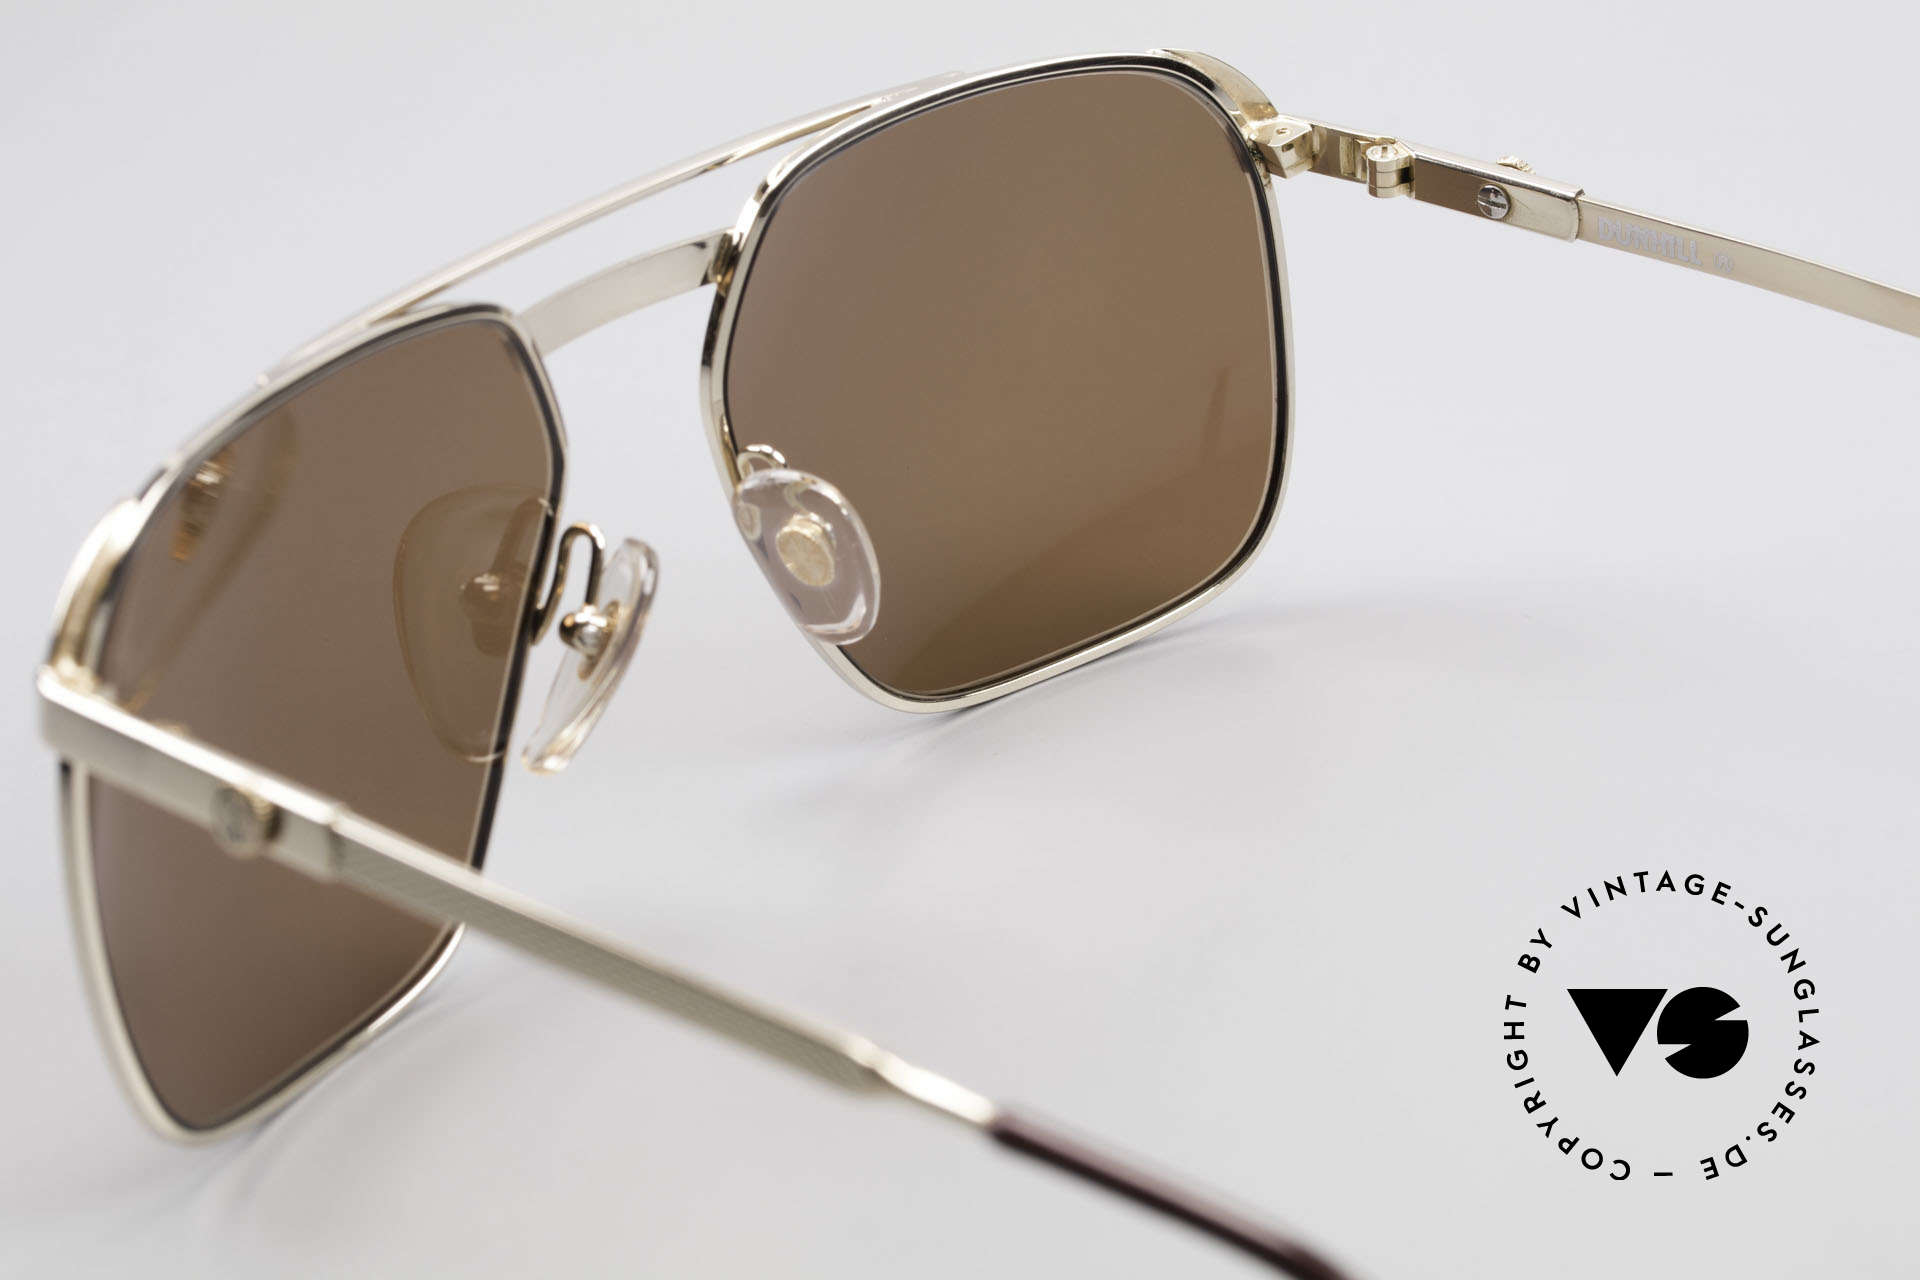 Dunhill 6011 Gold Plated Sunglasses 80's, NO RETRO frame, but a precious old original from 1984, Made for Men